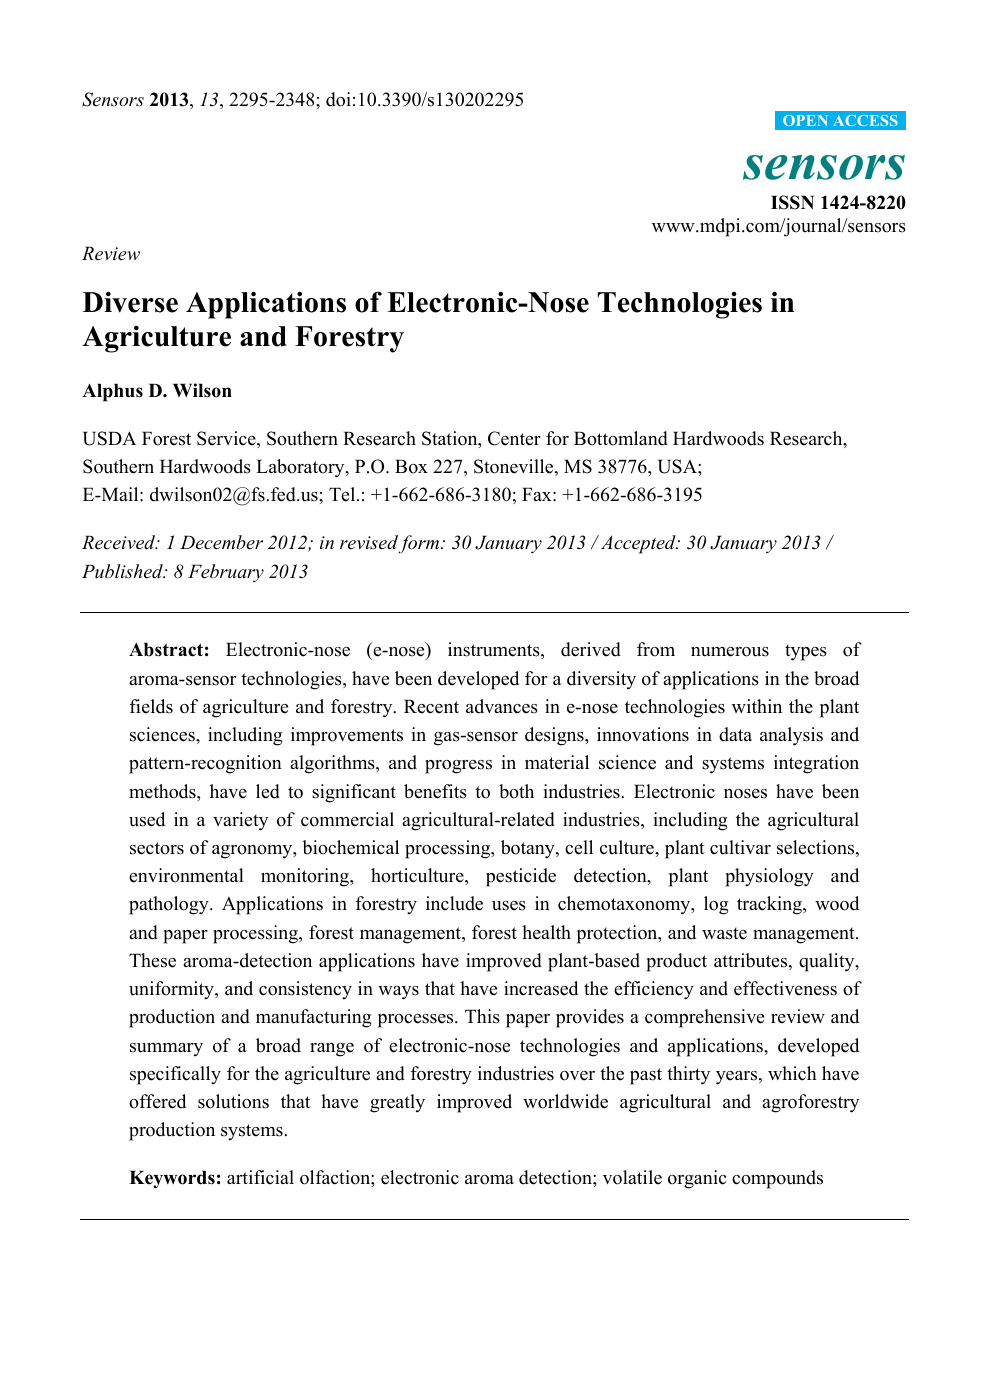 Diverse Applications of Electronic-Nose Technologies in Agriculture